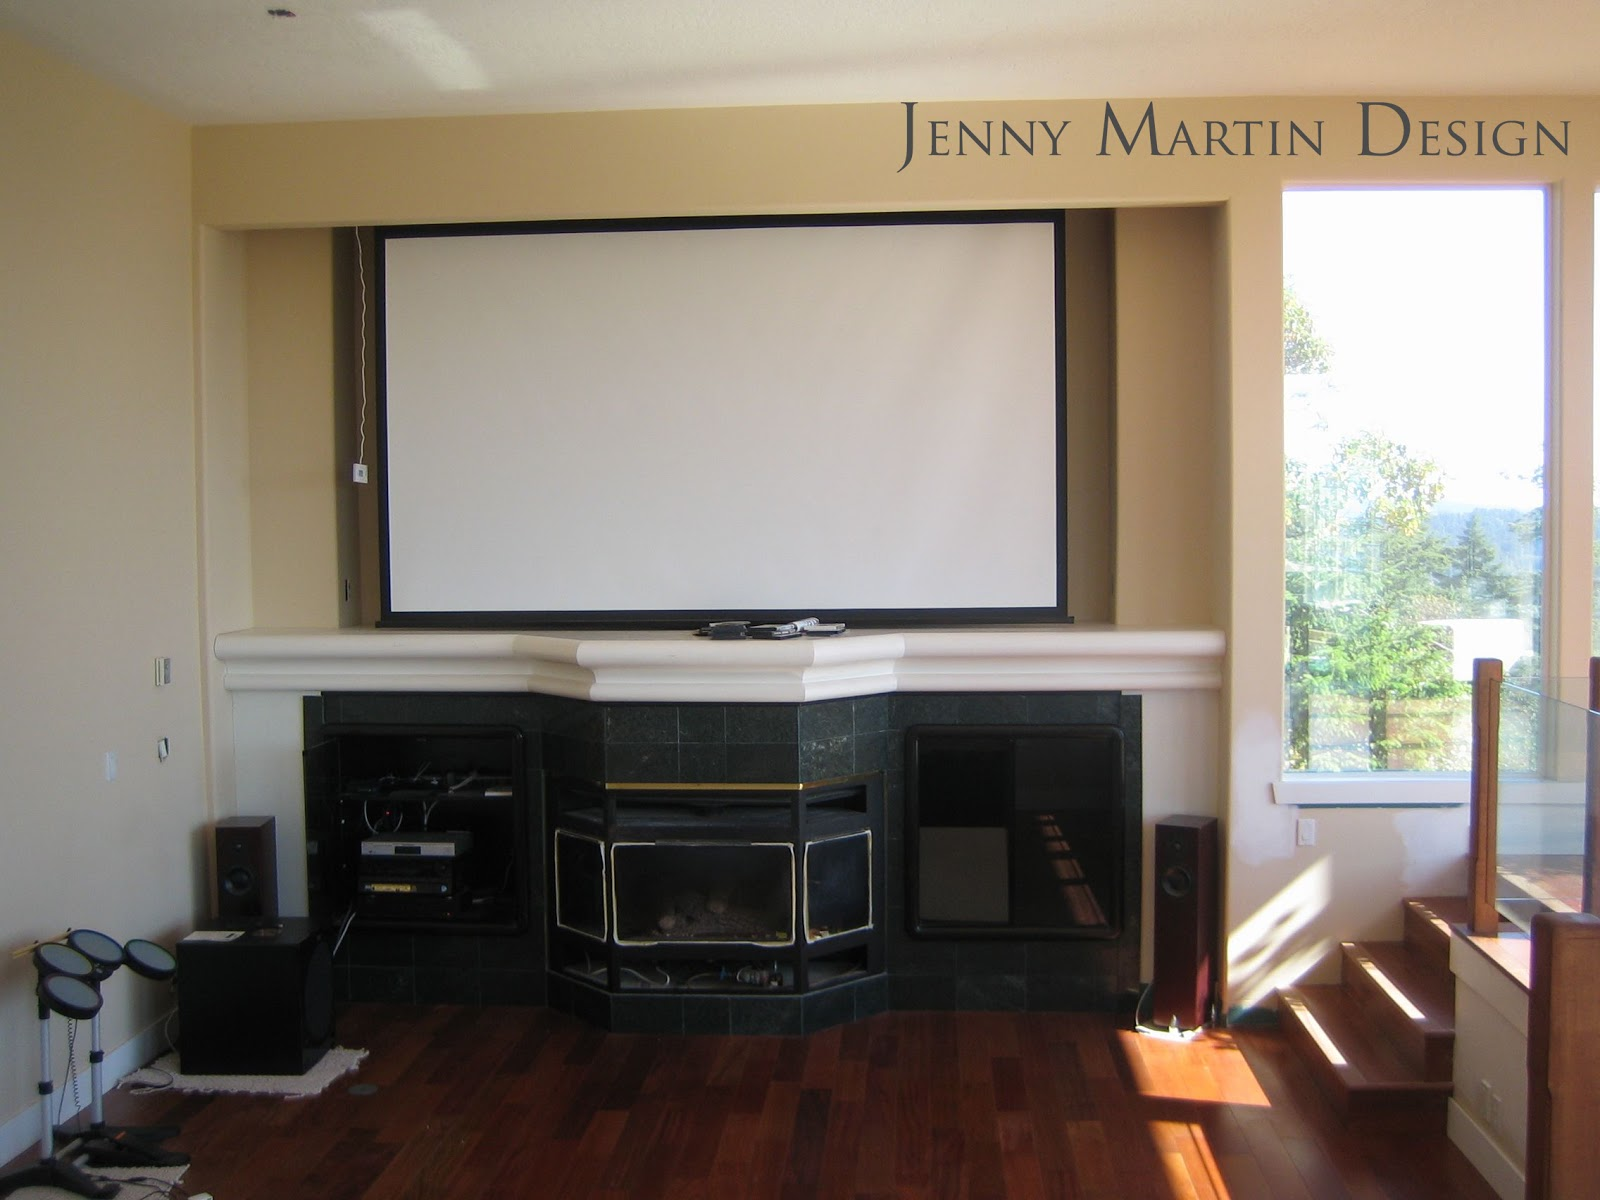 jenny martin design fireplaces